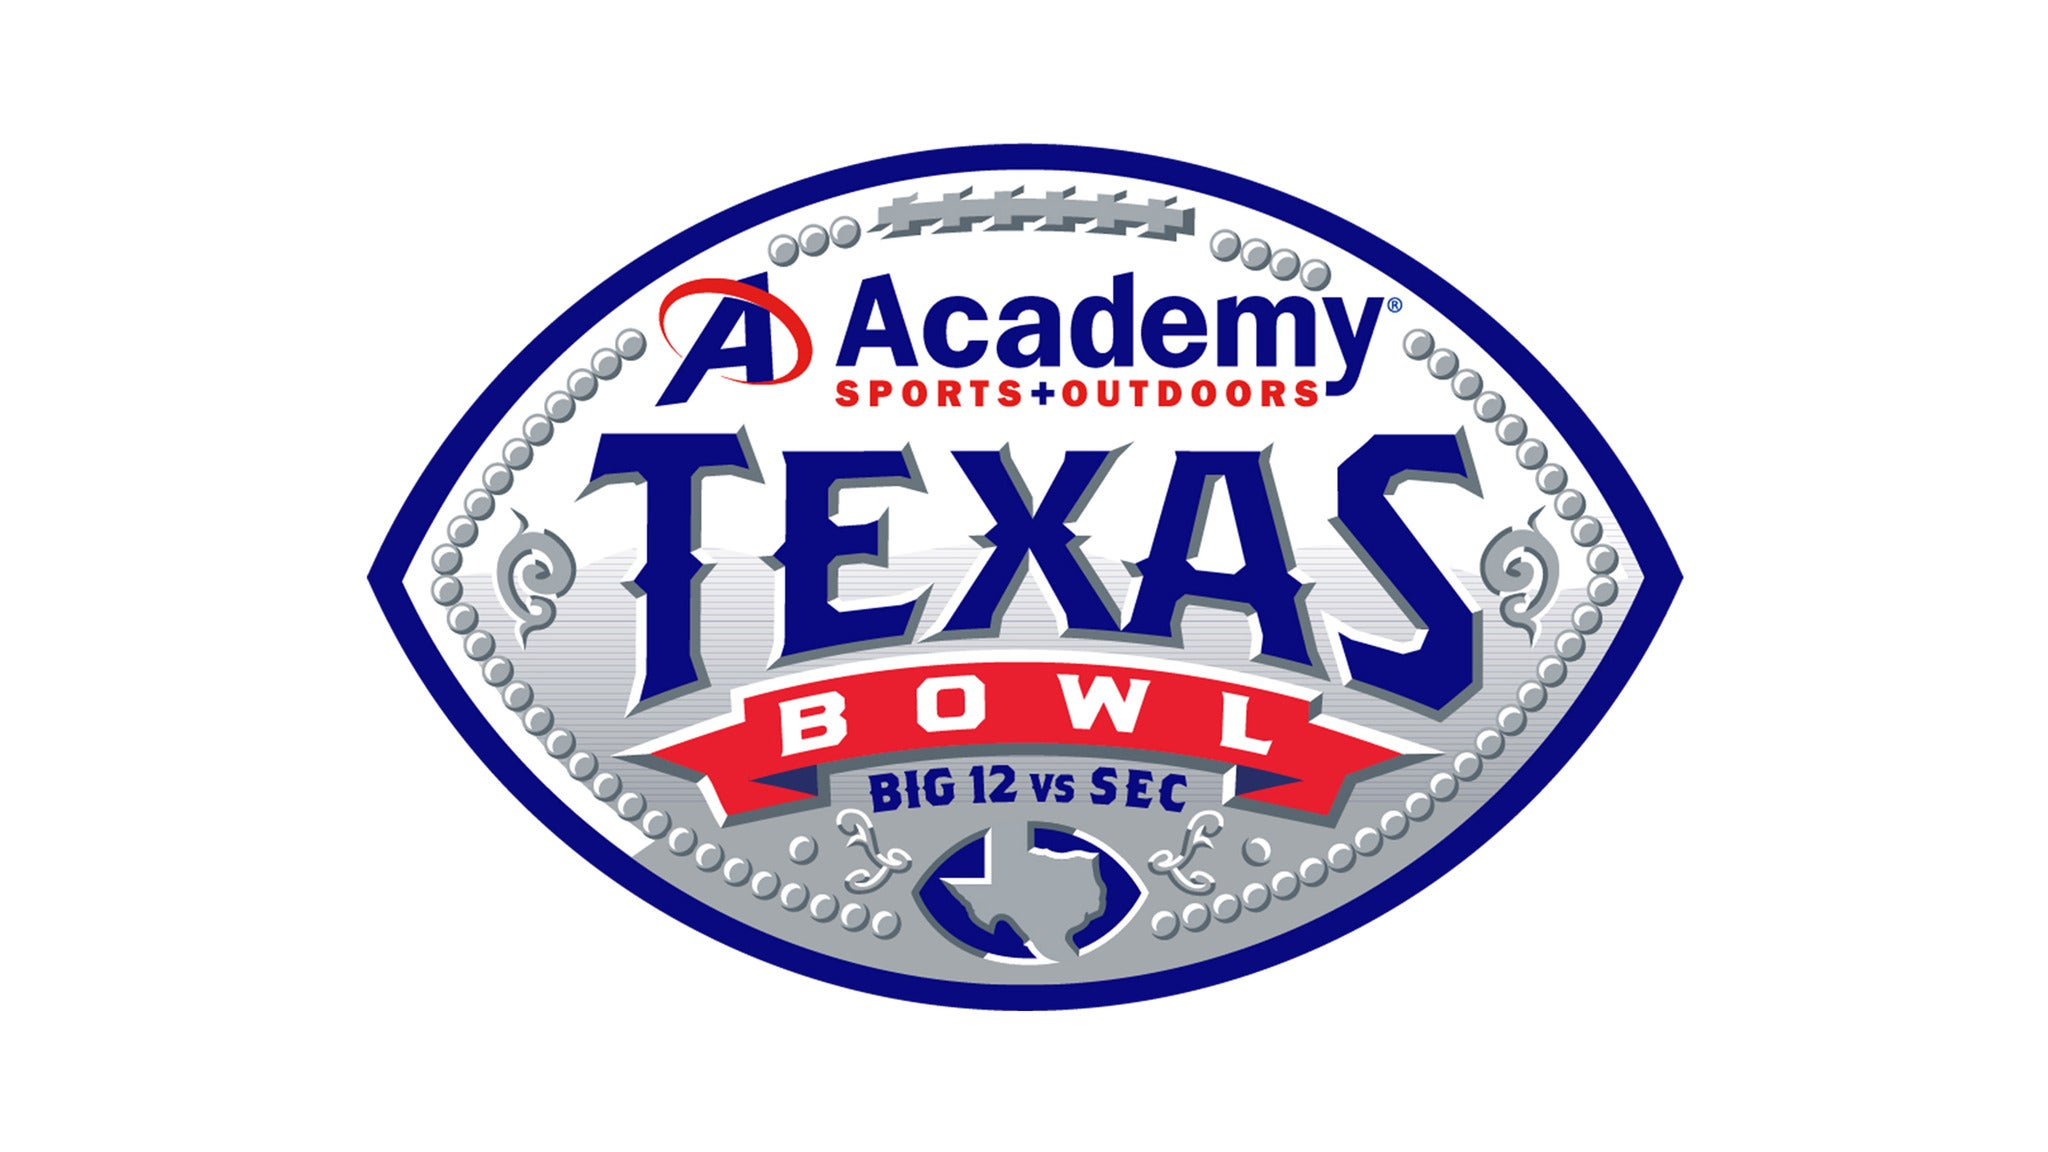 Academy Sports+Outdoors Texas Bowl